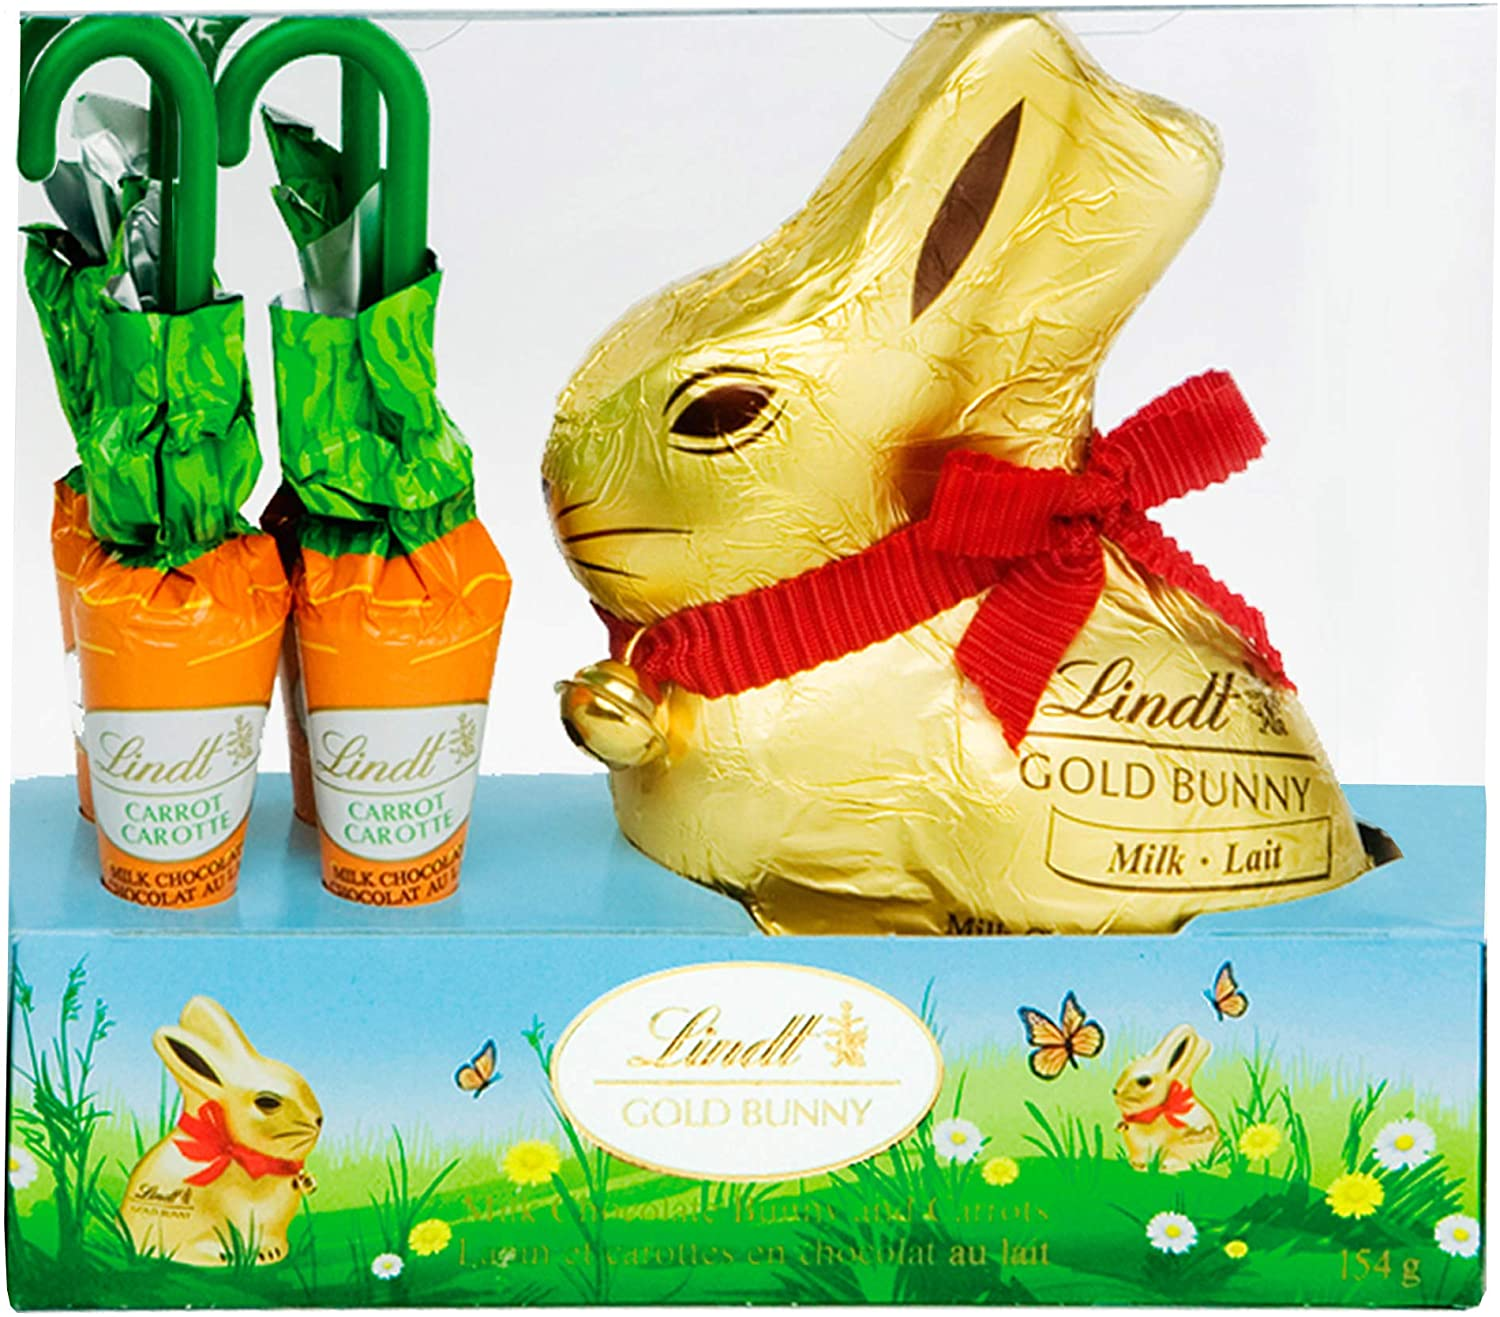 up-to-20-off-lindt-easter-chocolates-chocolate-eggs-at-903-2021-3-26